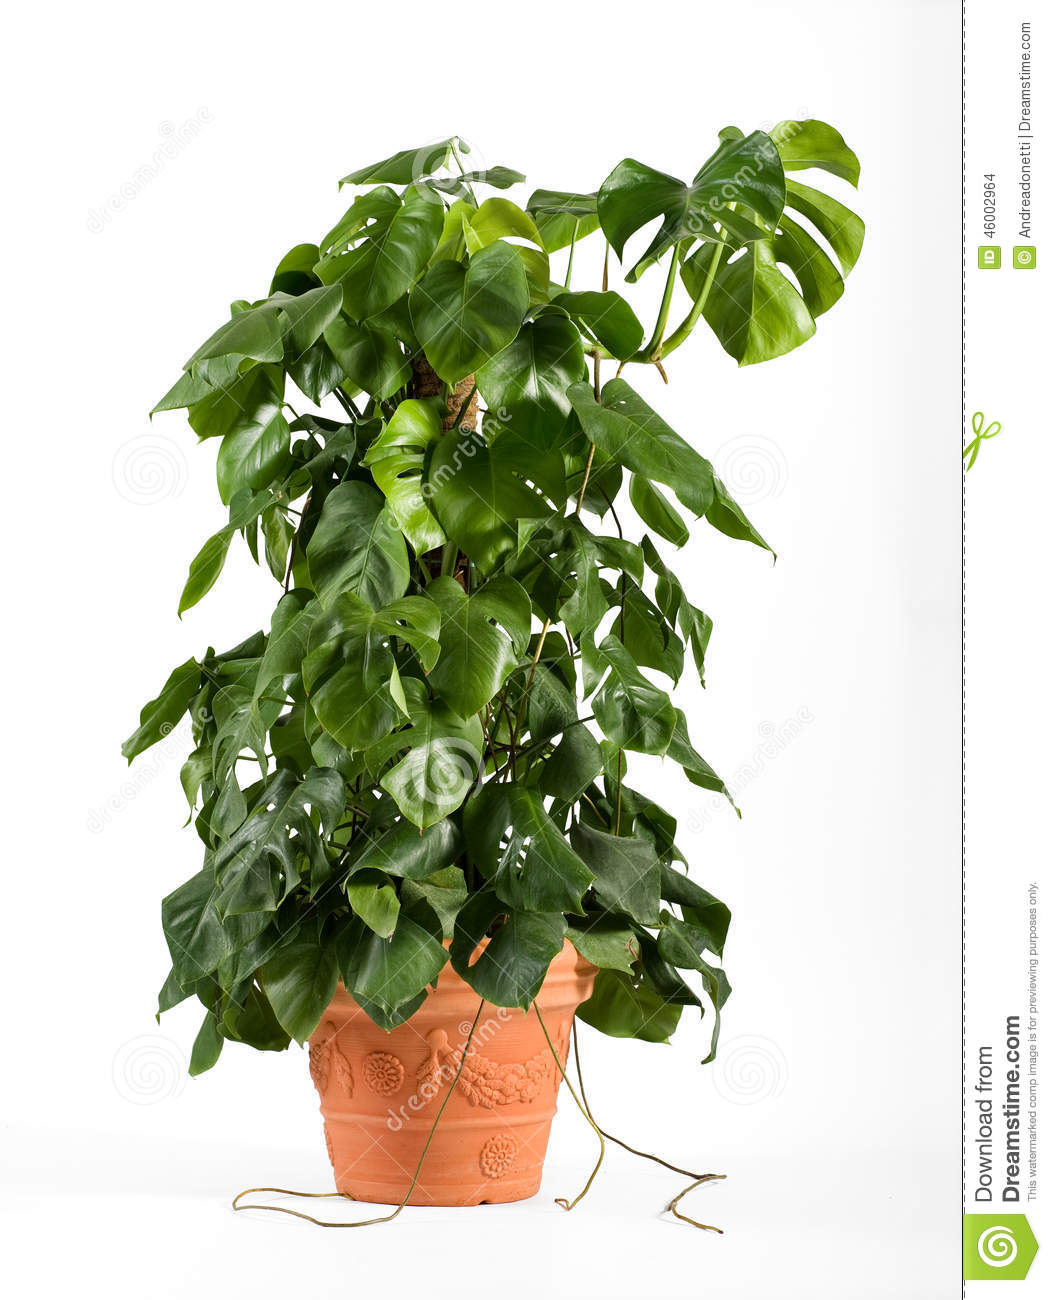 Leafy green delicious monster plant stock photo image 46002964 - Green leafy indoor plants ...